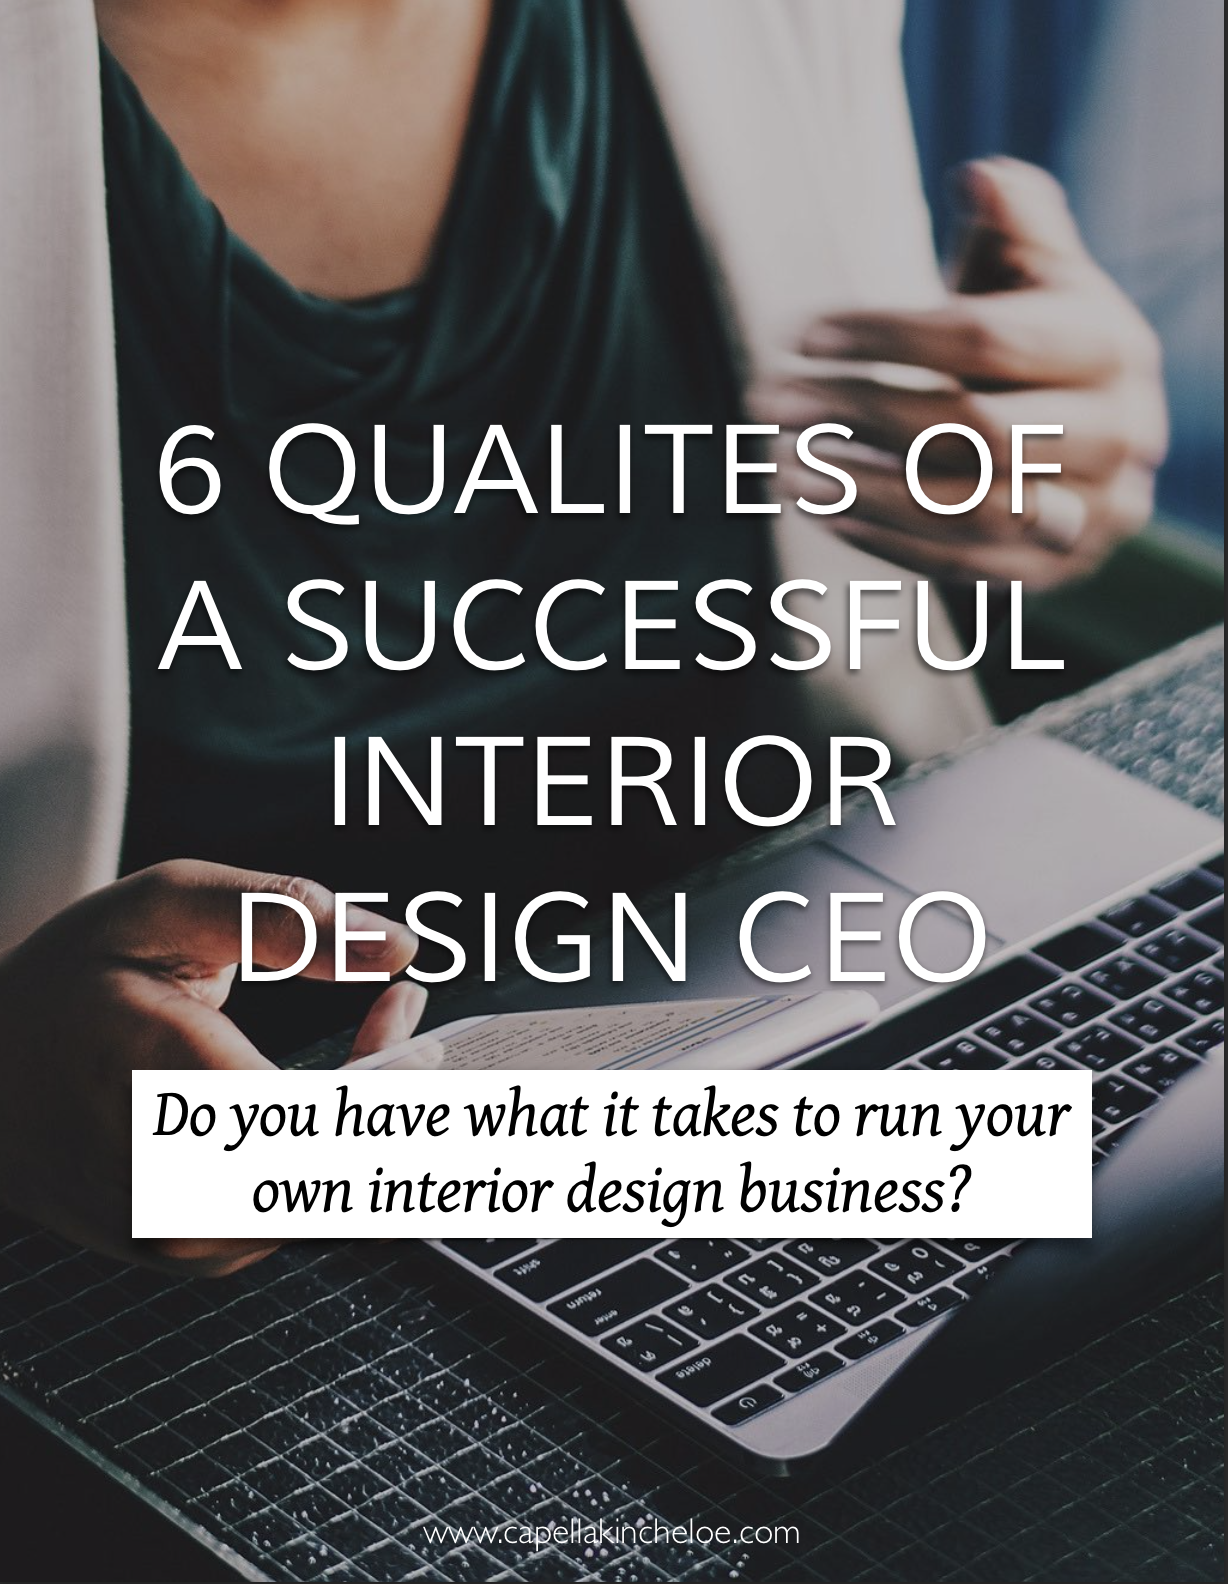 The six must-have qualities of a successful interior design ceo, do you have what it takes? #interiordesignbusiness #interiordesignceo #runningabusiness #cktradesecrets